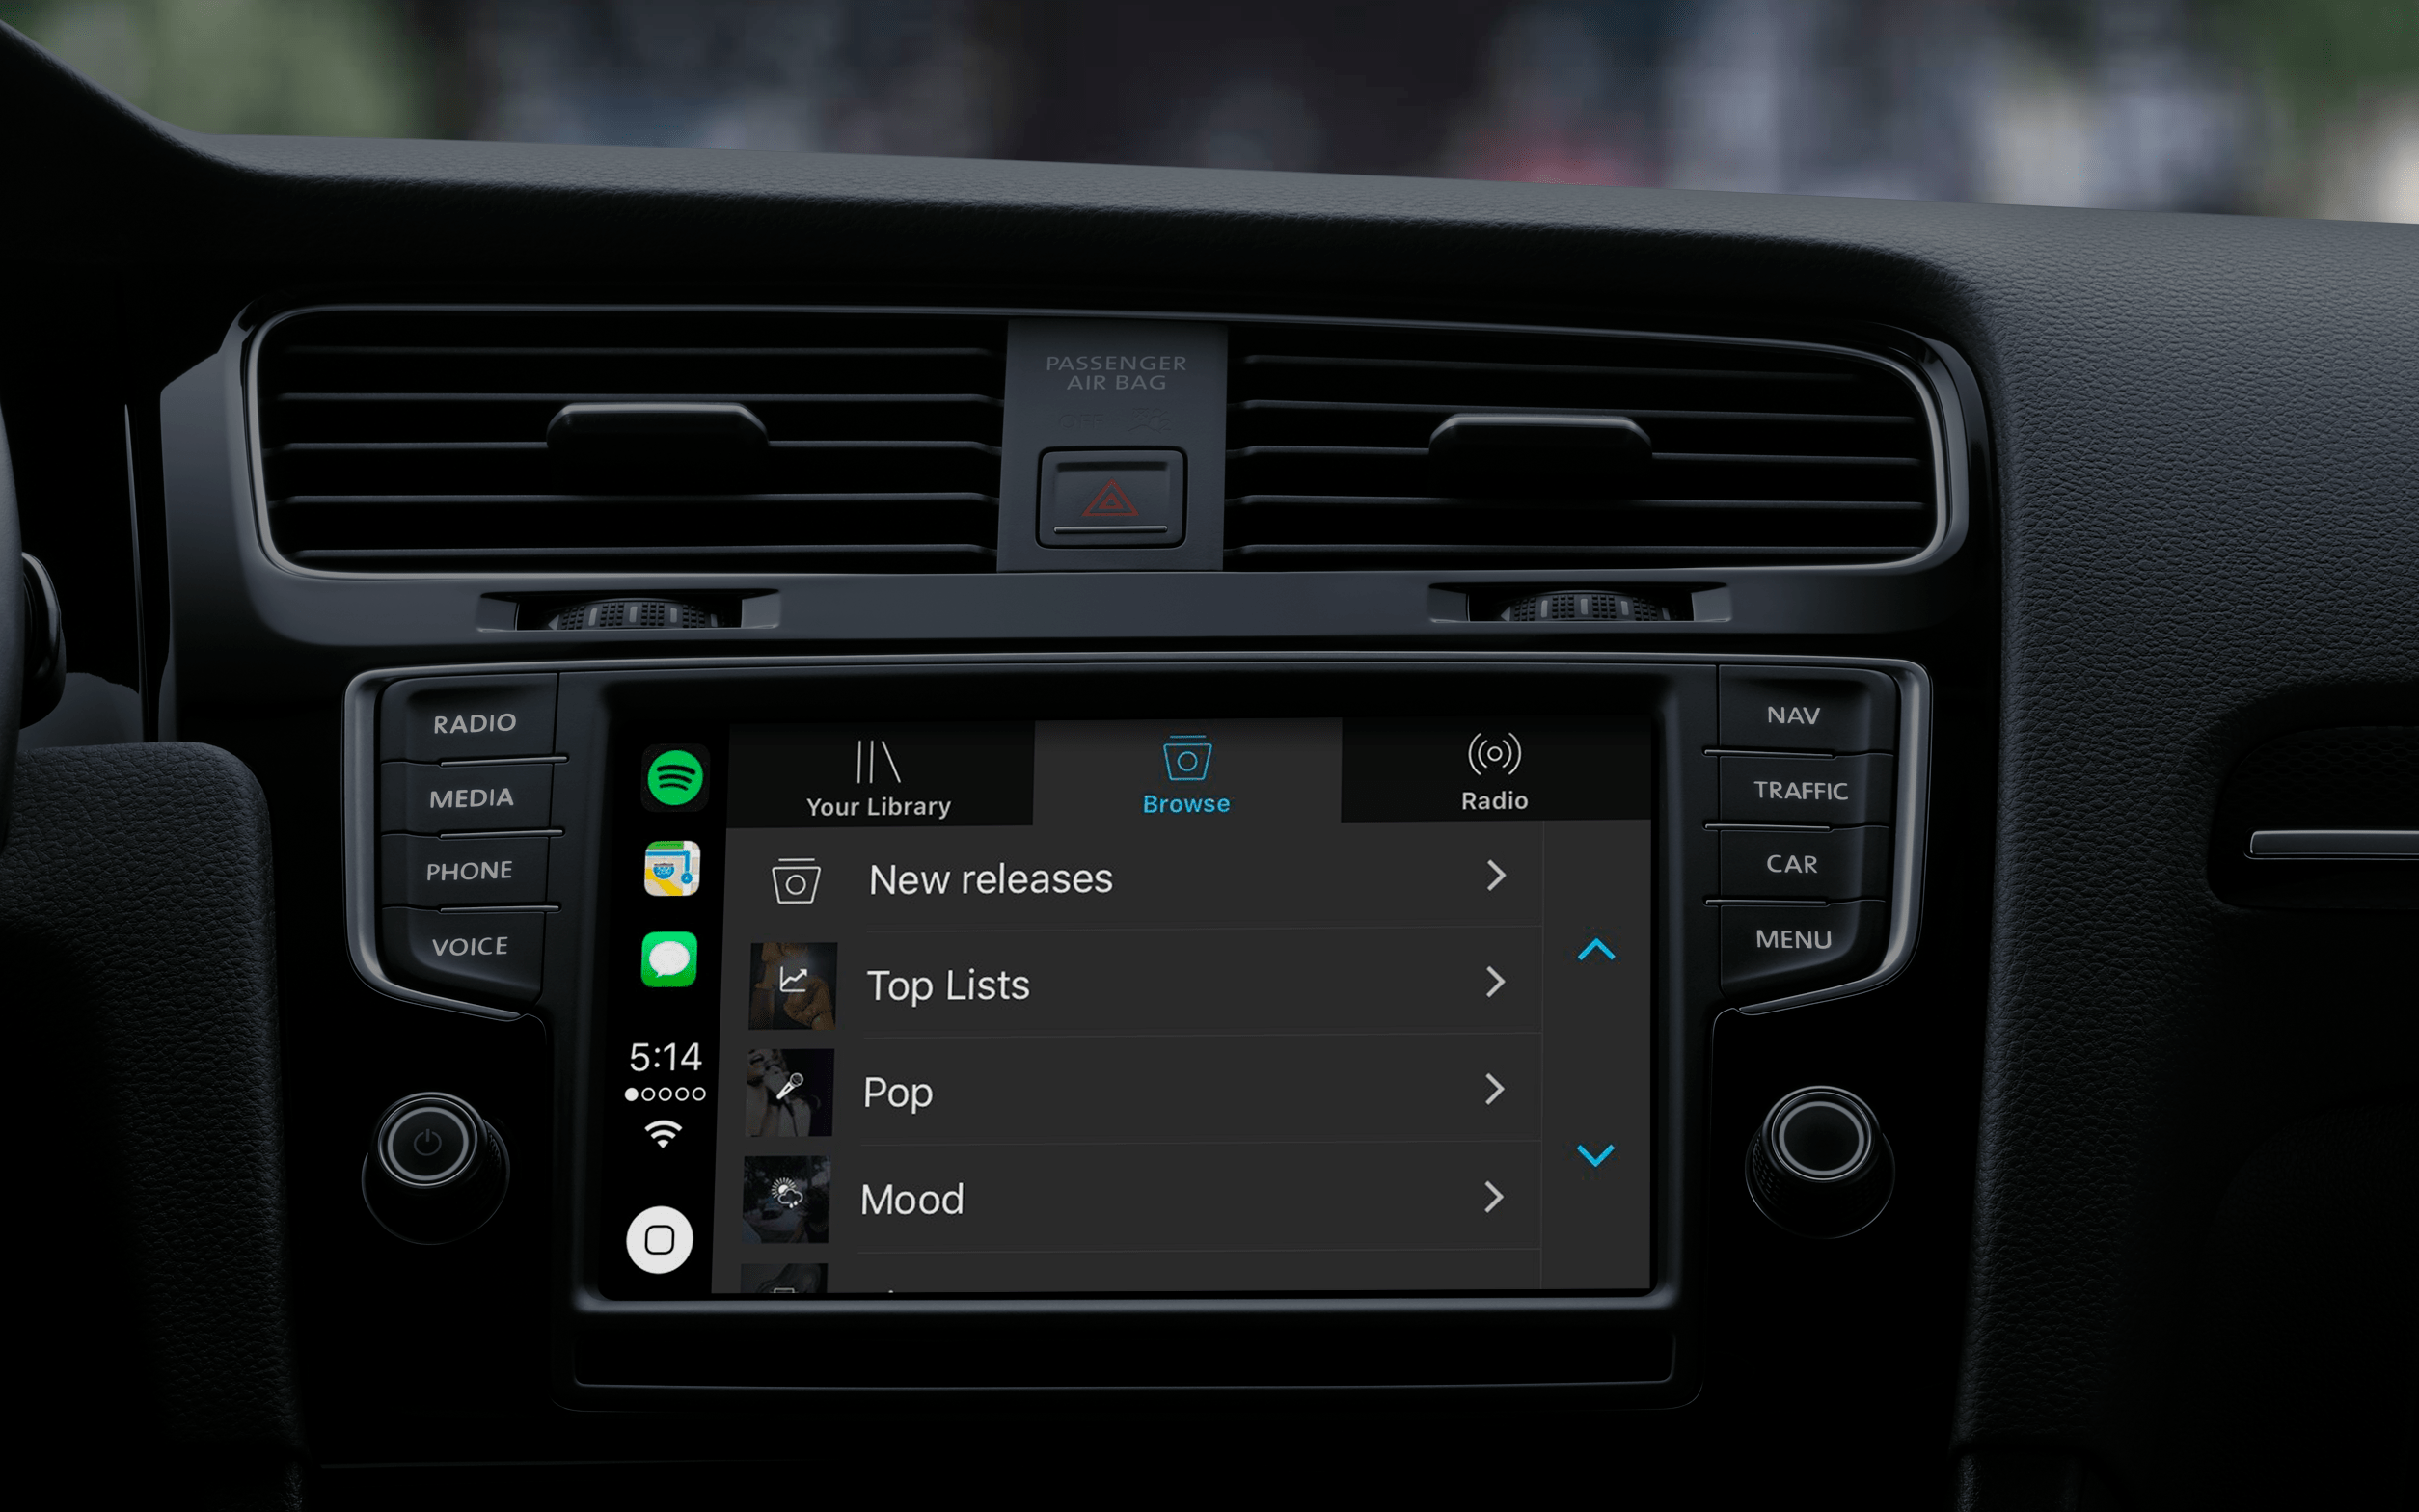 Discover Apple CarPlay Apps List from Third-Party Developers